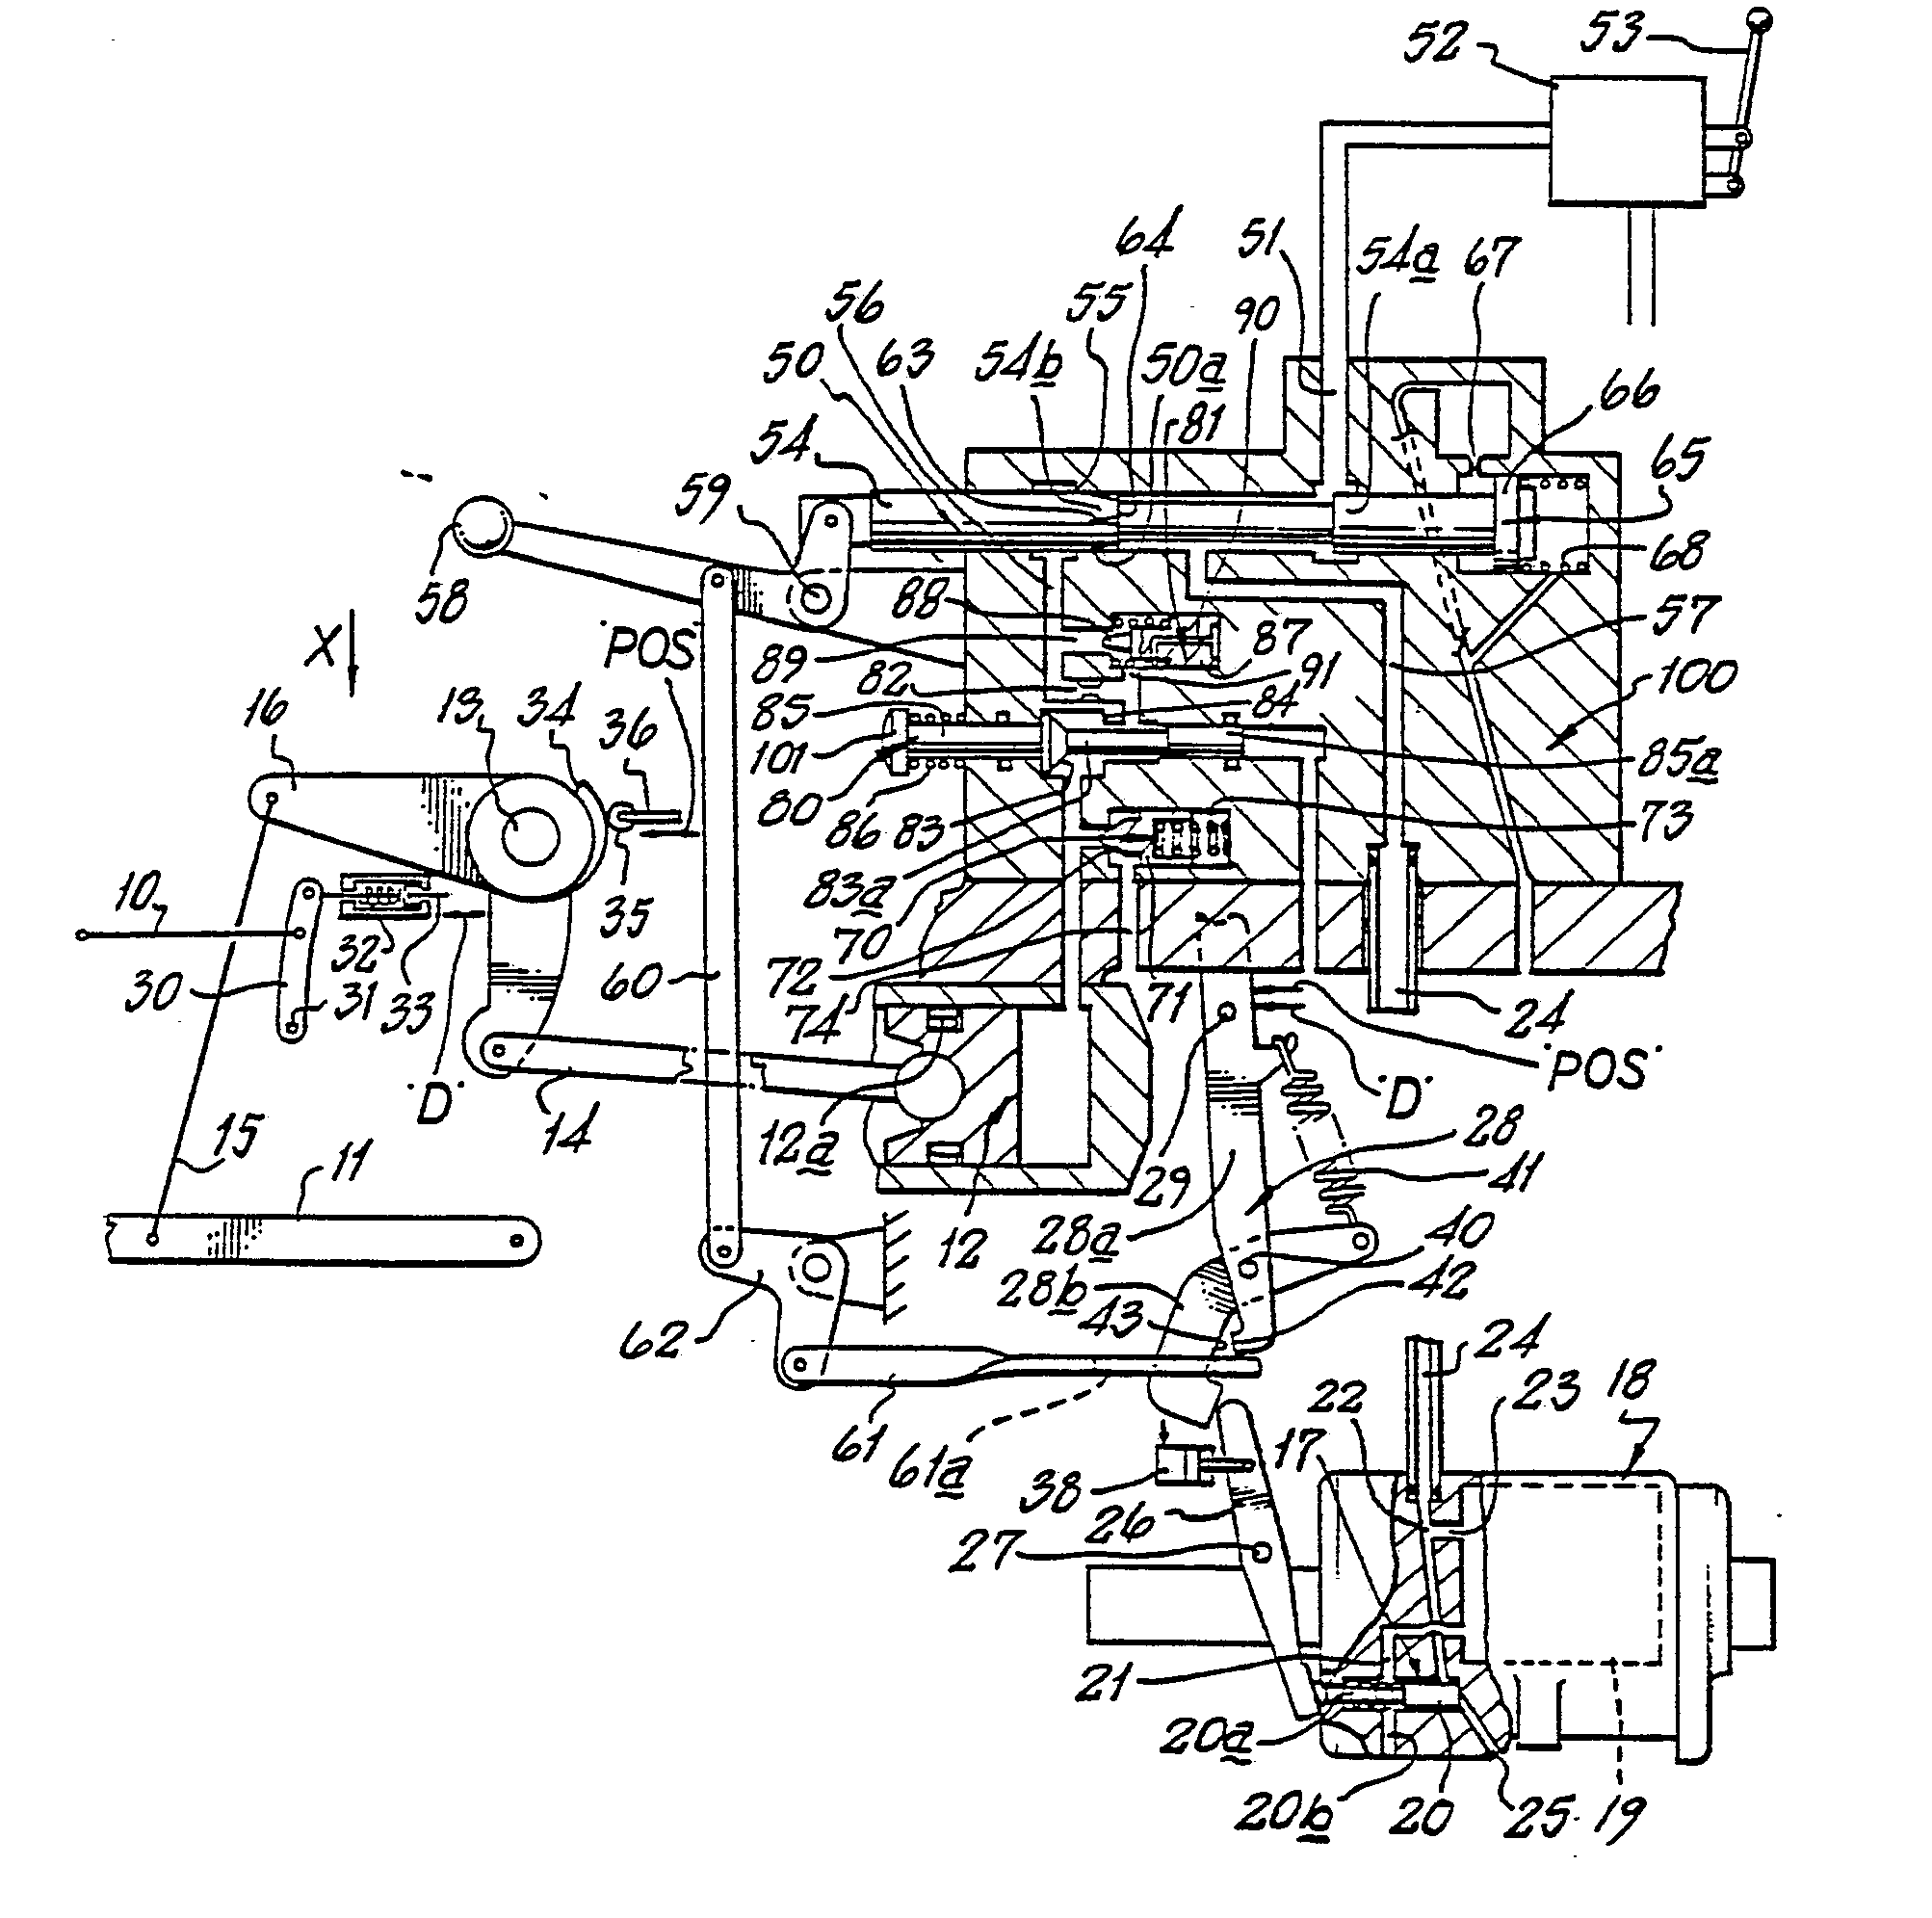 ford distributor wiring diagram ford image 3000 ford tractor wiring diagram 3000 discover your wiring on ford 3000 distributor wiring diagram